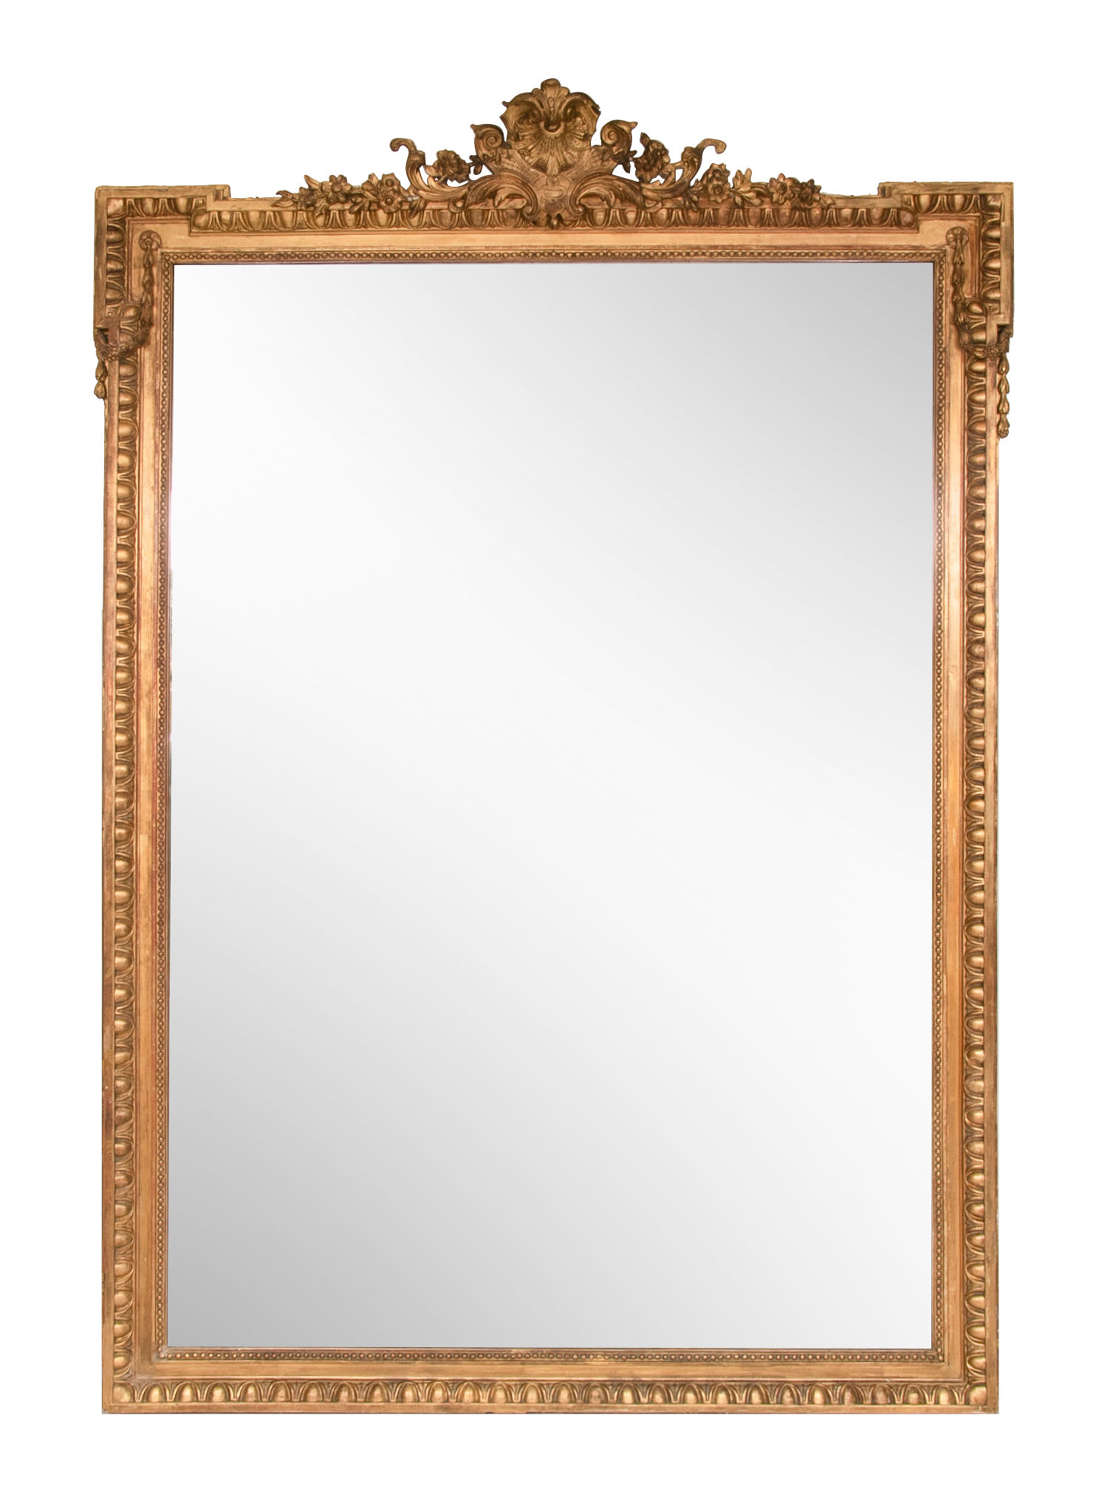 A large Antique gilded overmantle mirror